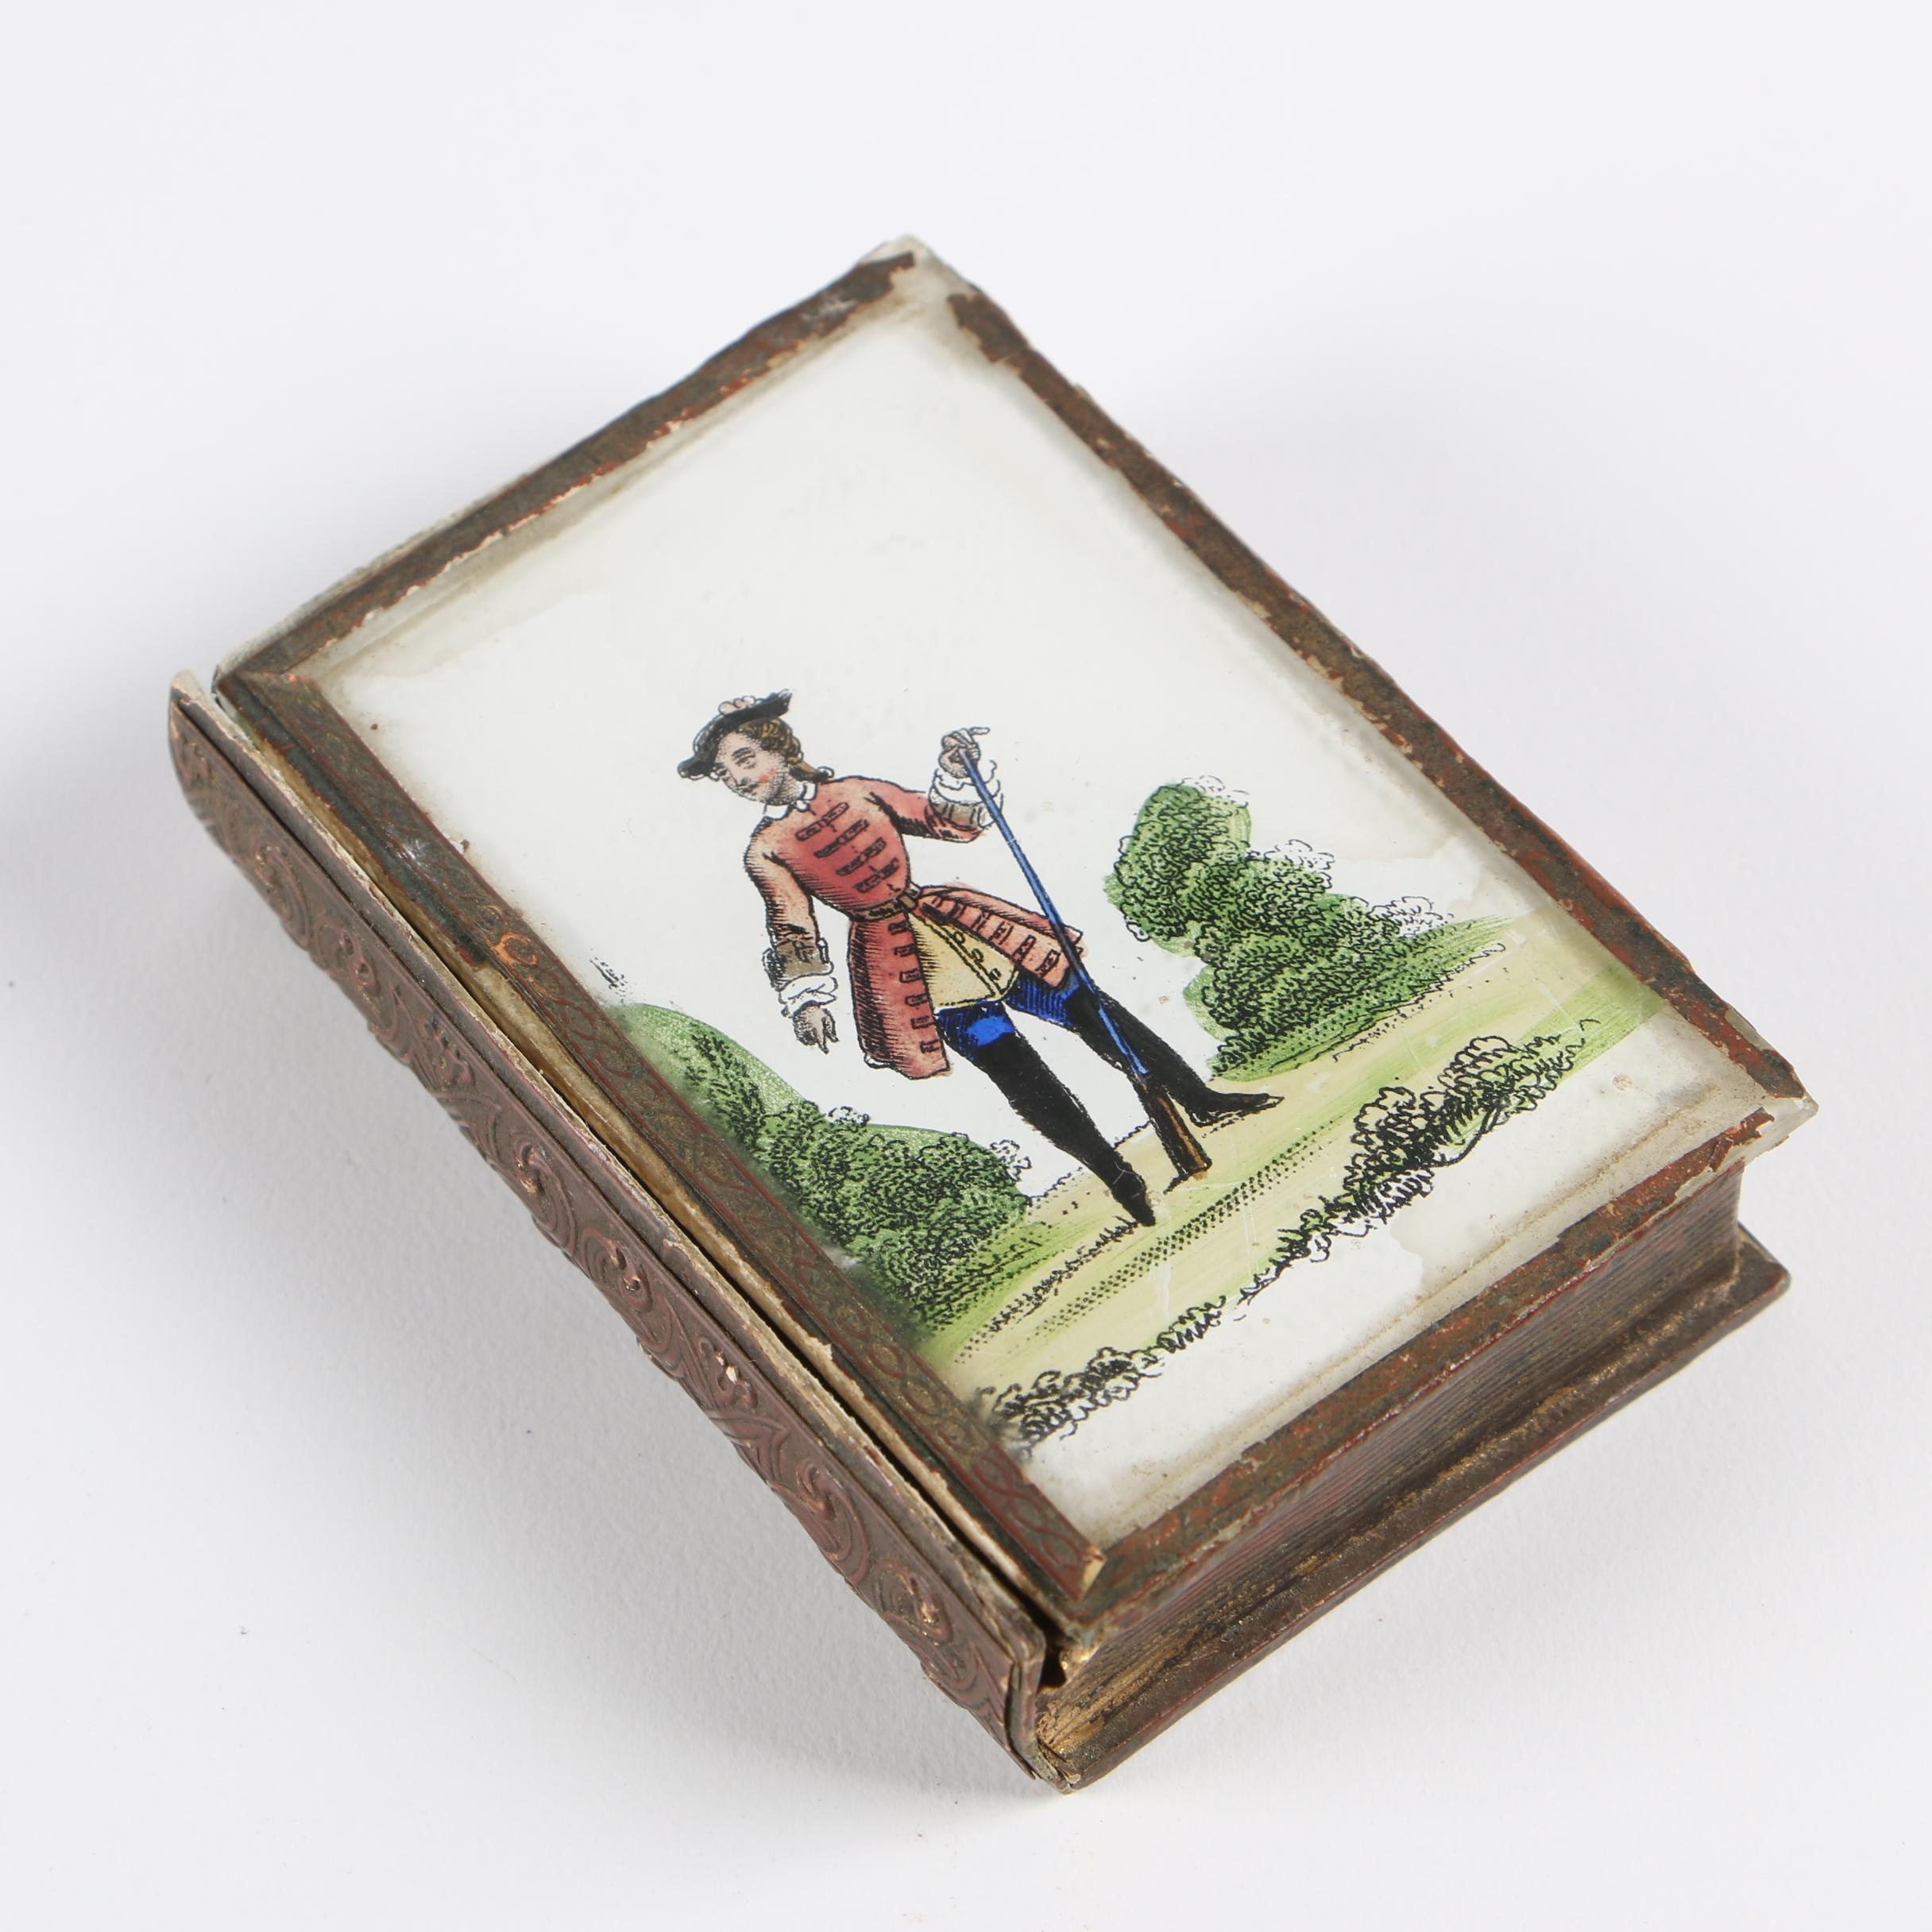 Book Shaped Memento Box with Reverse Glass Image Lid and Mirror